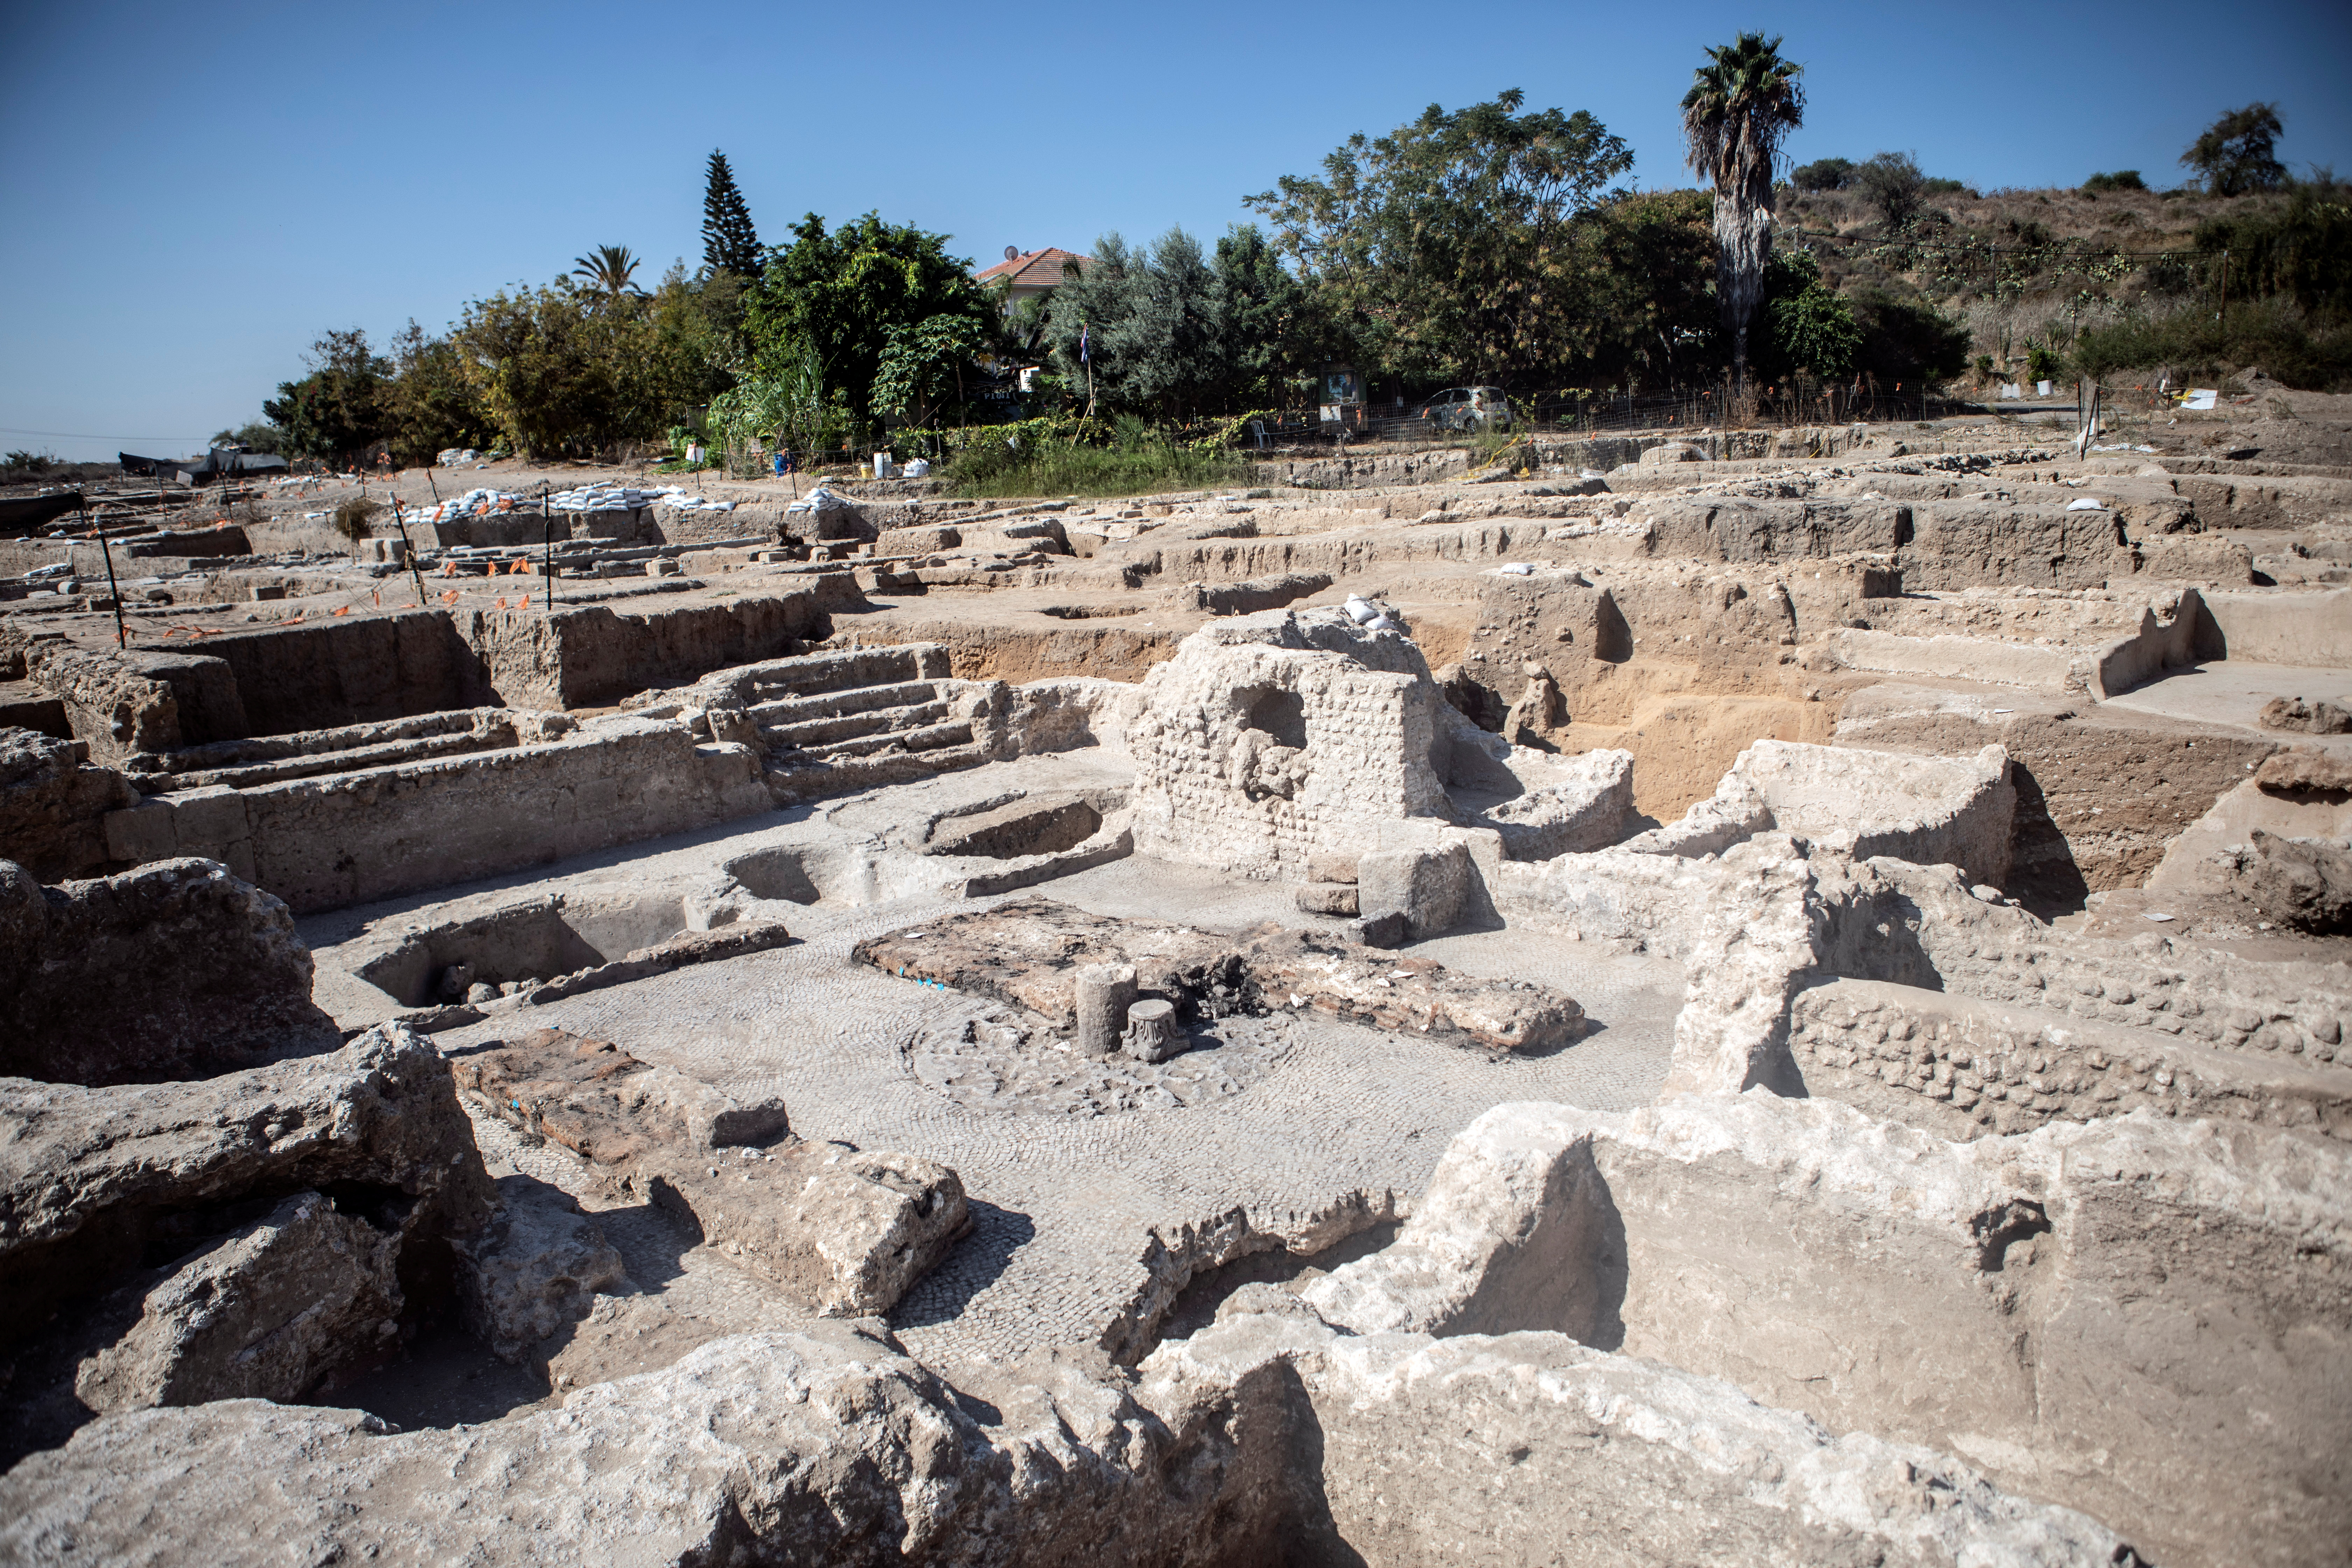 A general view shows the remains of a 1500-year-old Byzantine winery uncovered by the Israel Antiquities Authority, in Yavne, Israel October 11, 2021. REUTERS/Nir Elias